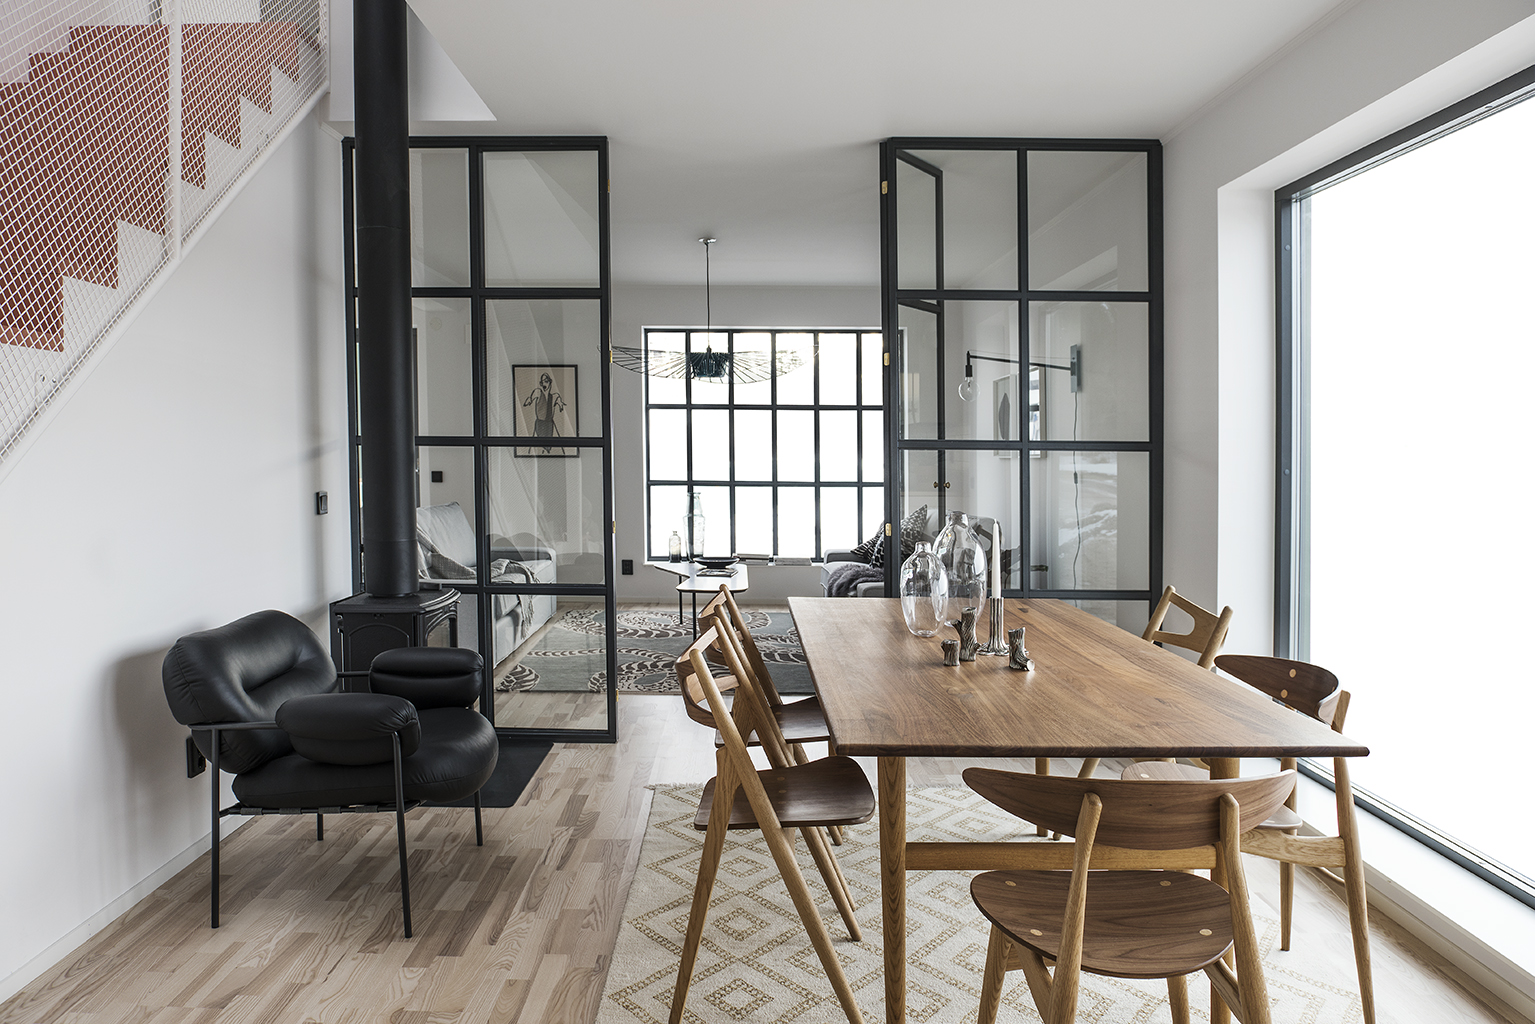 ... Mummy Cooking In The Kitchenu2026u2026 Here Is A Short Selection Of Some Of My  Fave Interiors. The Introductive Picture Is The Open Space Silighini  Divided With ...